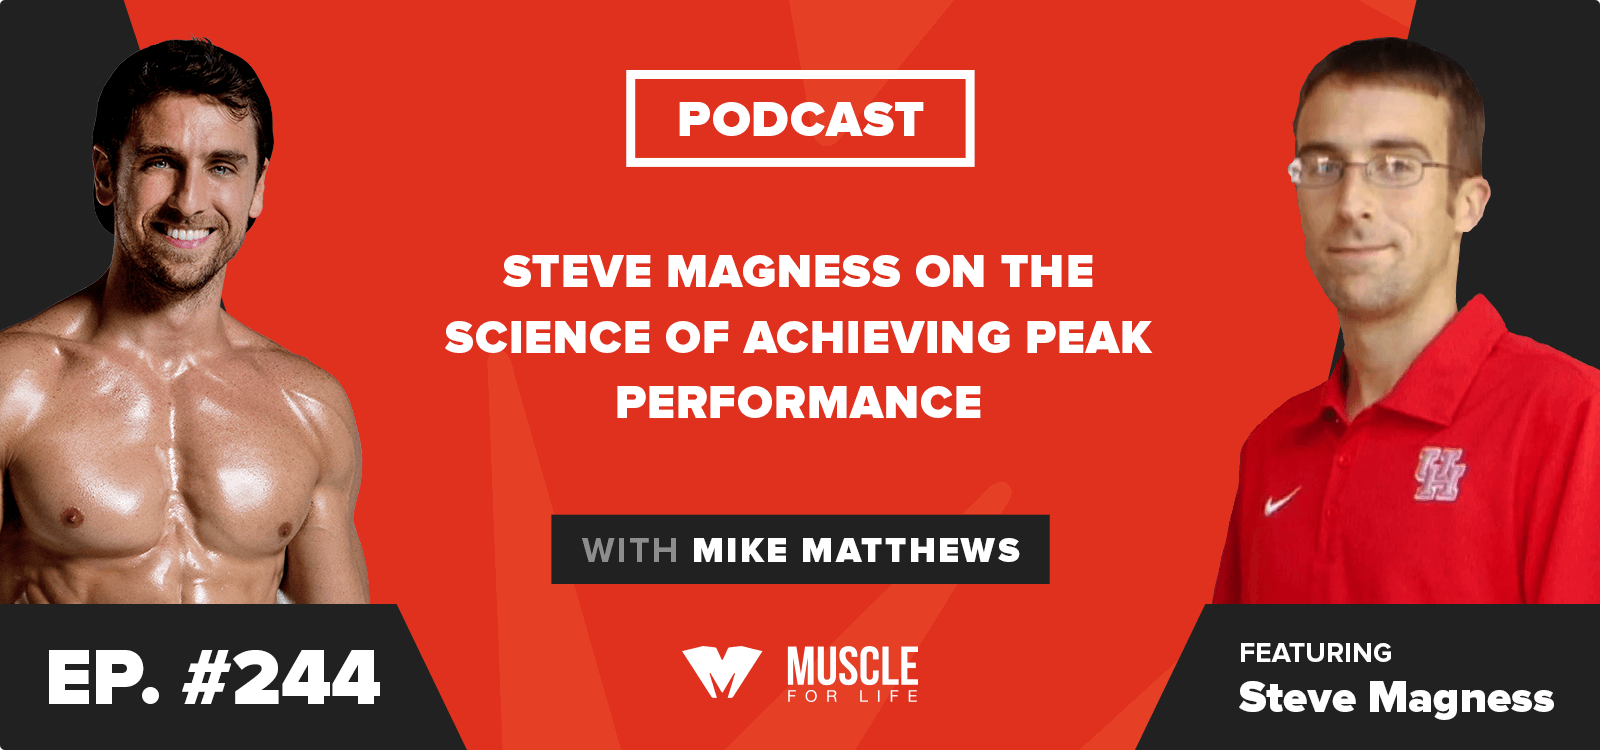 Steve Magness on the Science of Achieving Peak Performance